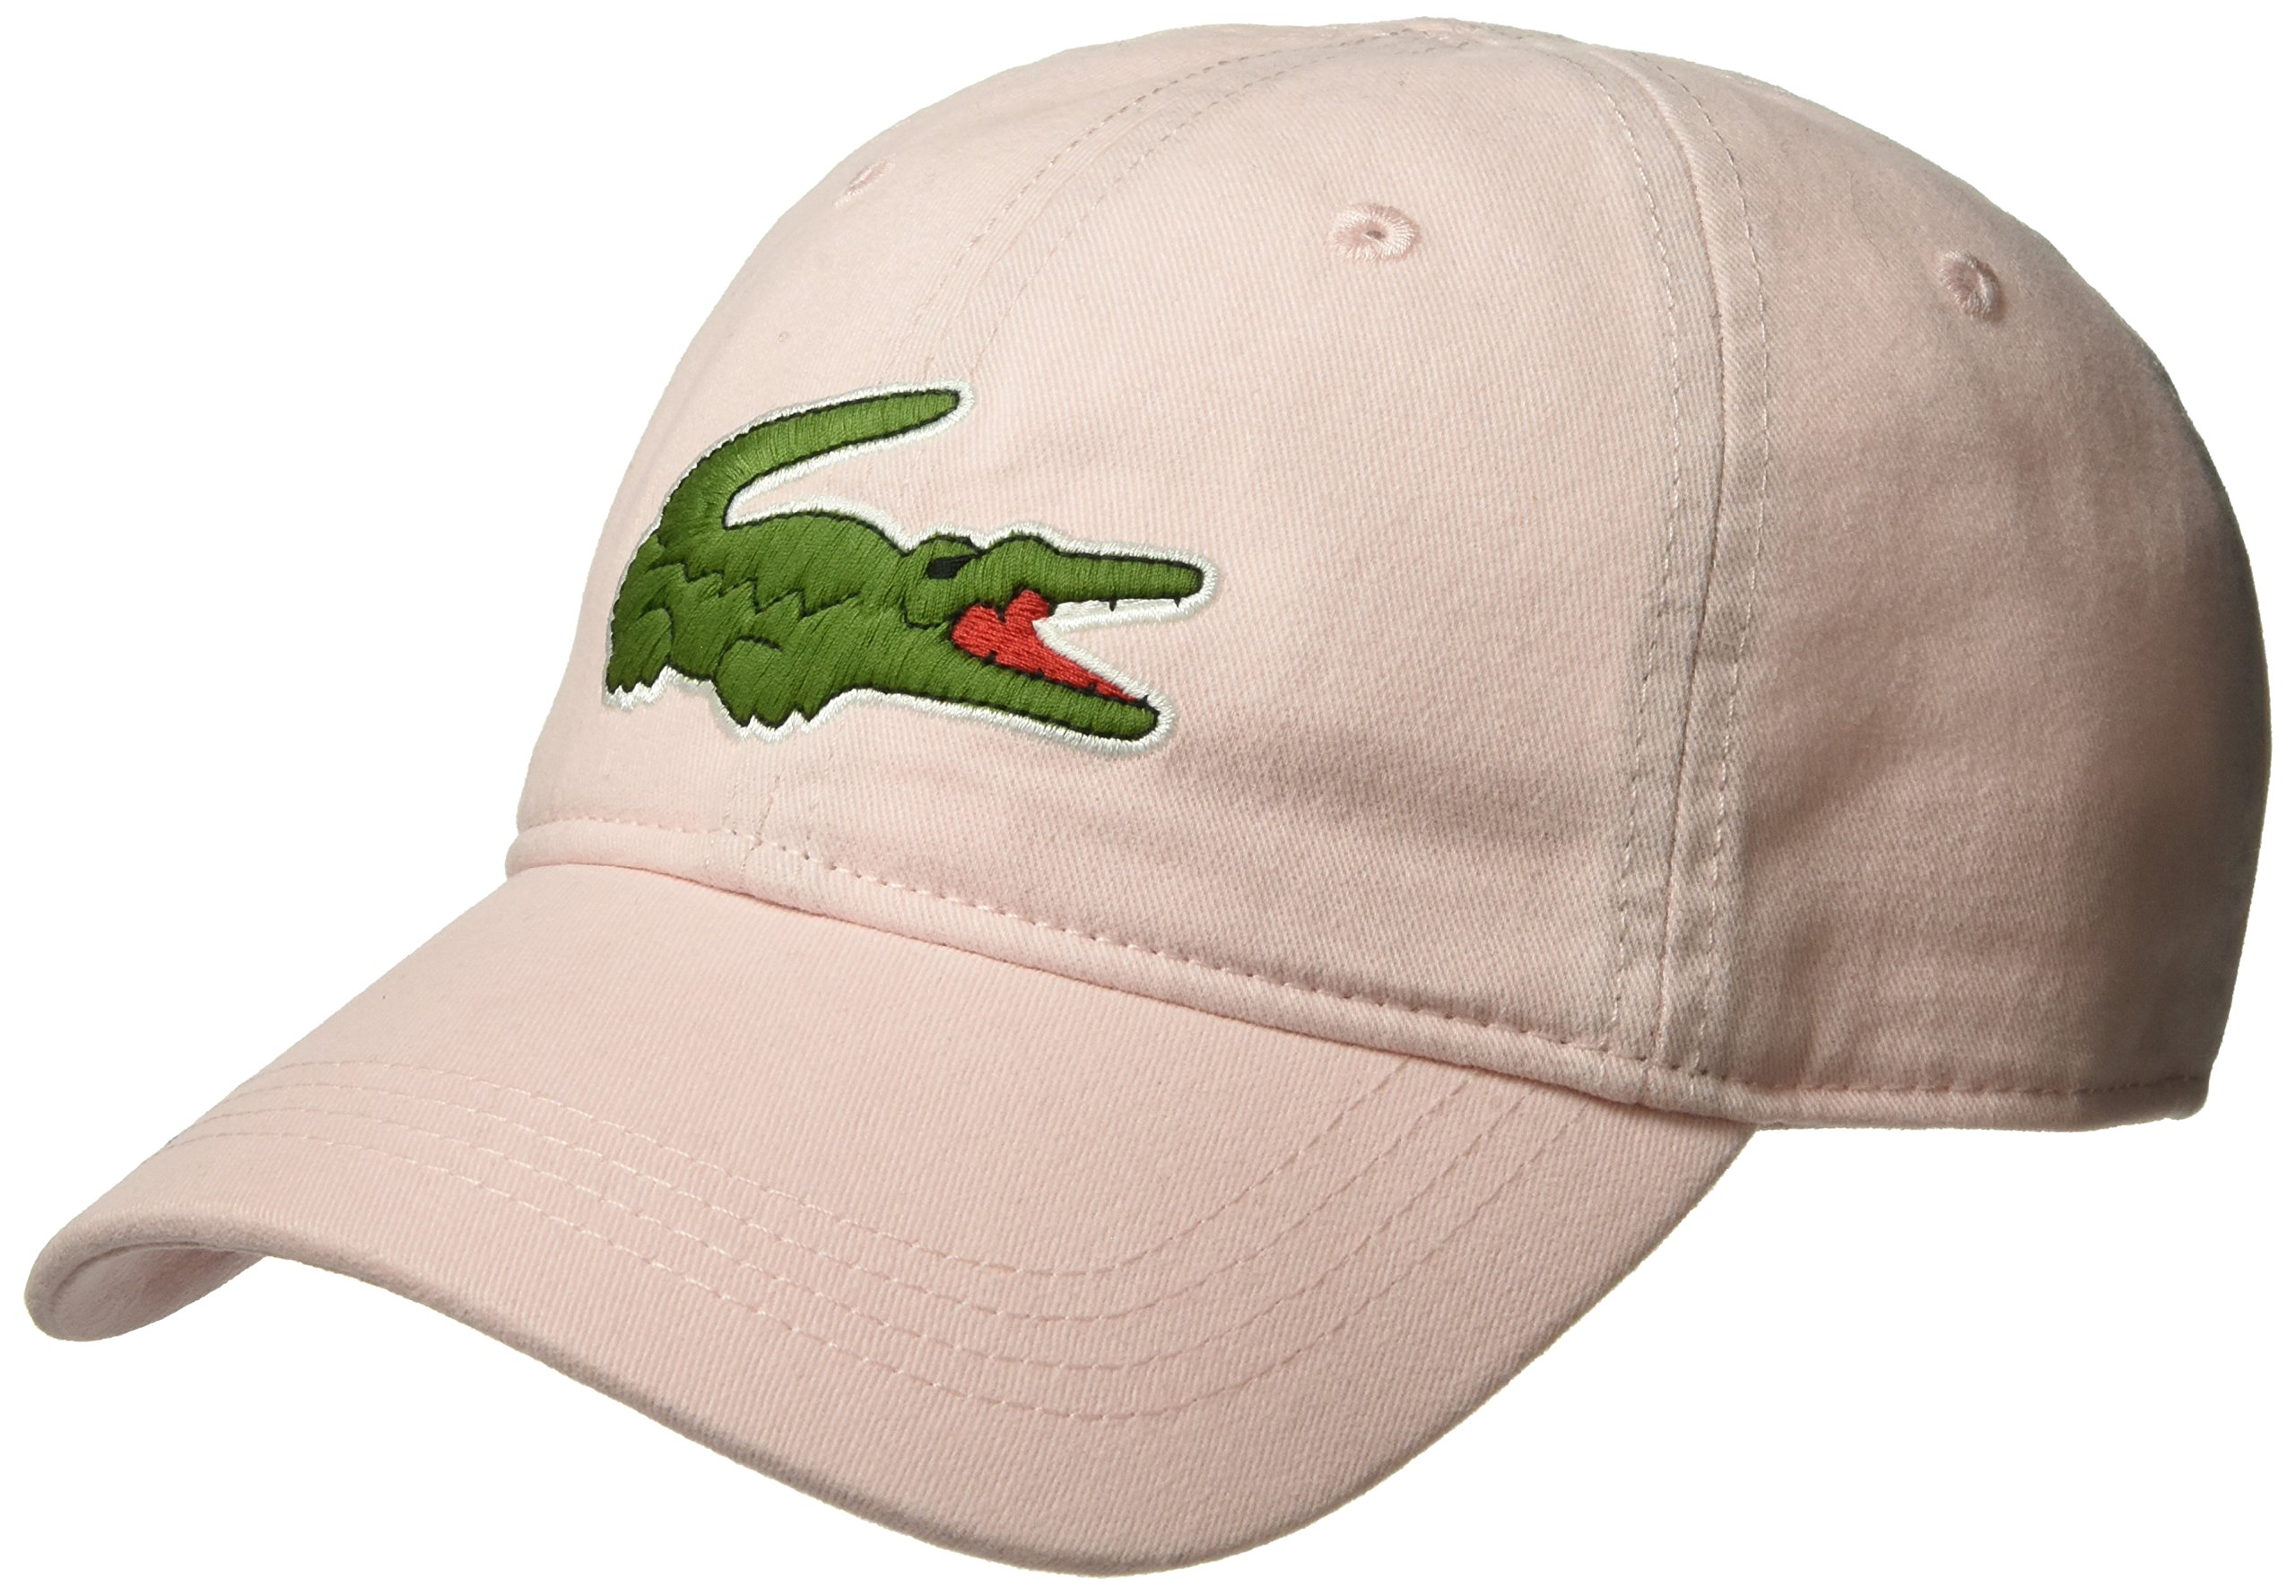 35adf06c Galleon - Lacoste Men's Big Croc Gabardine Cap, Flamingo, One Size